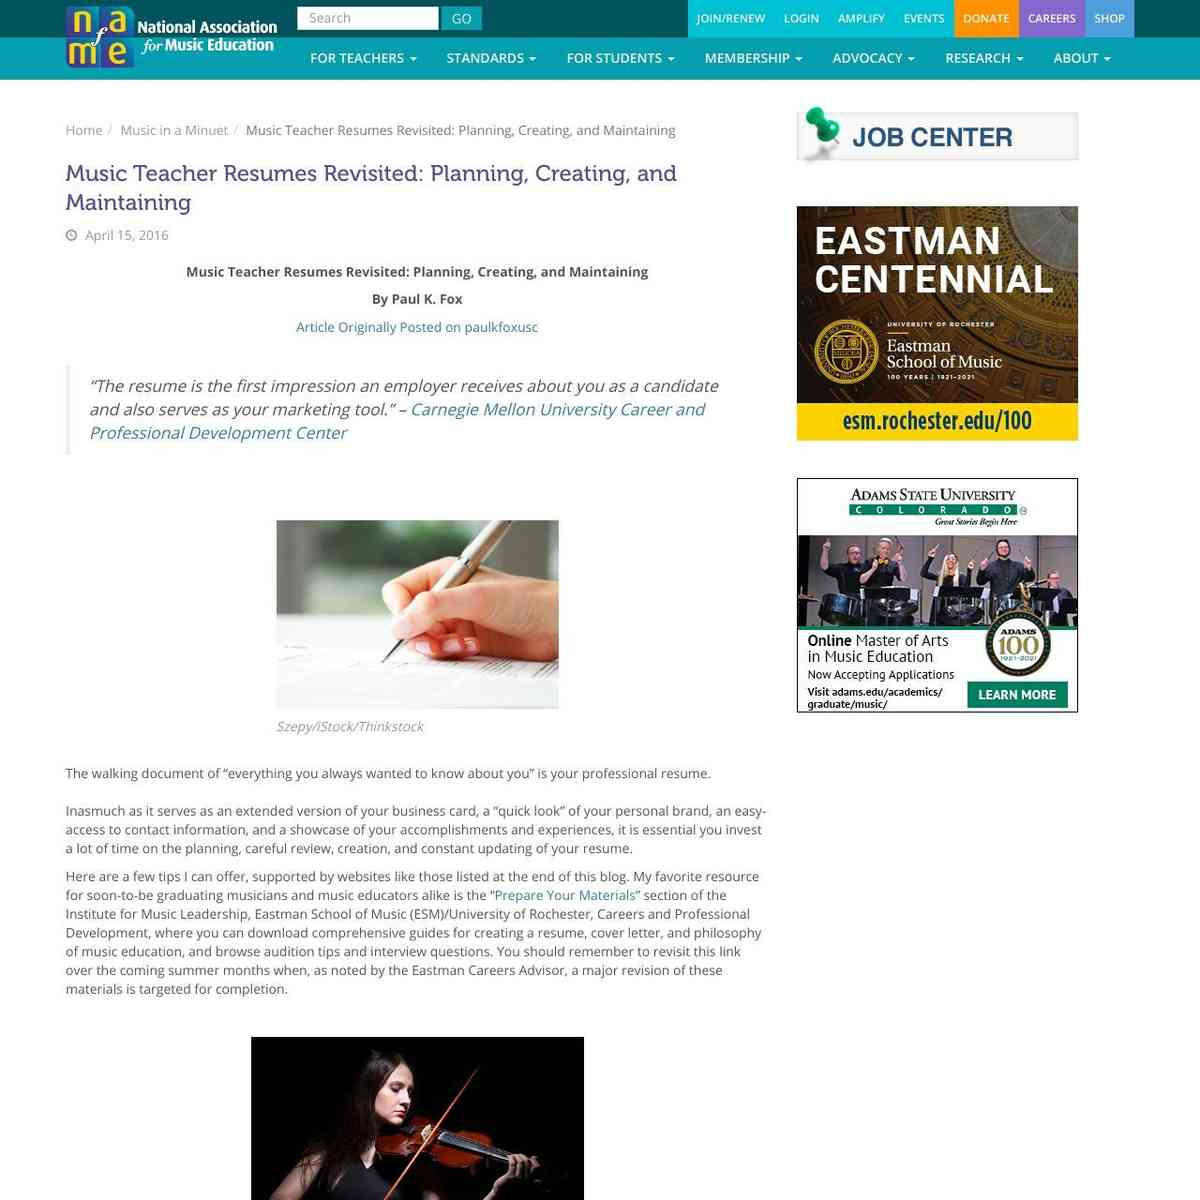 NAFME: Music Teacher Resumes Revisited: Planning, Creating, and Maintaining